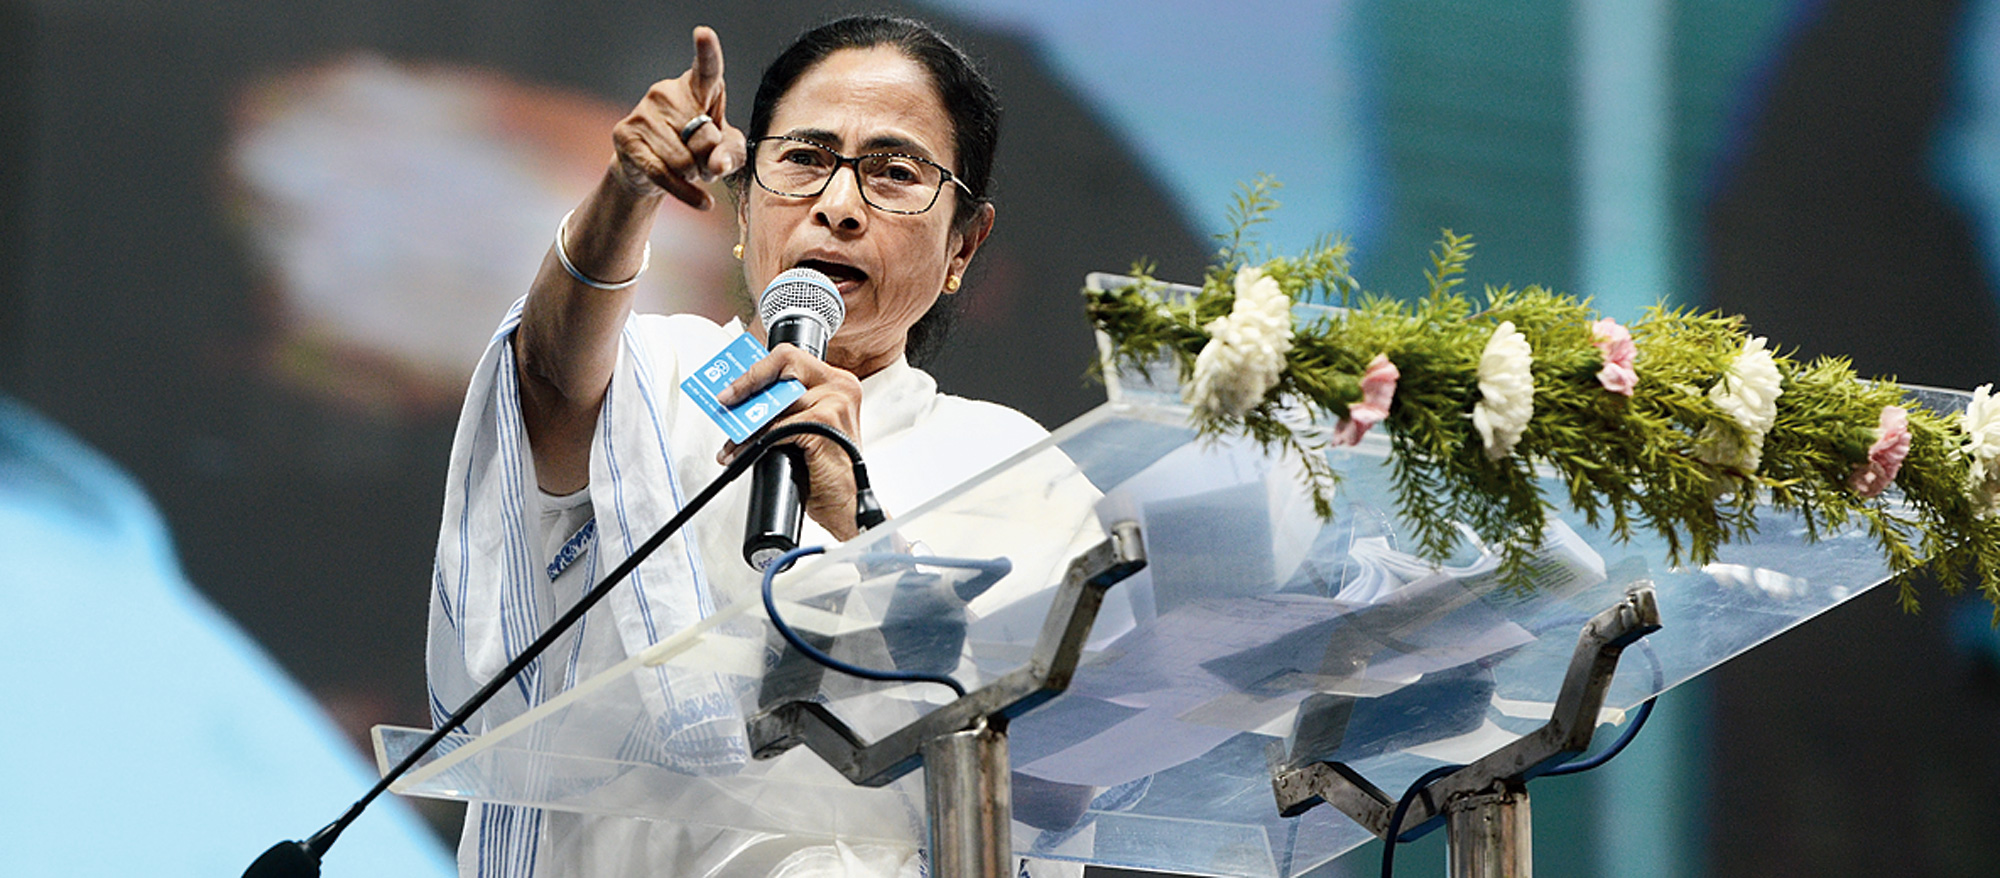 Mamata speaks at the government event in Tarakeswar, Hooghly, on Friday.